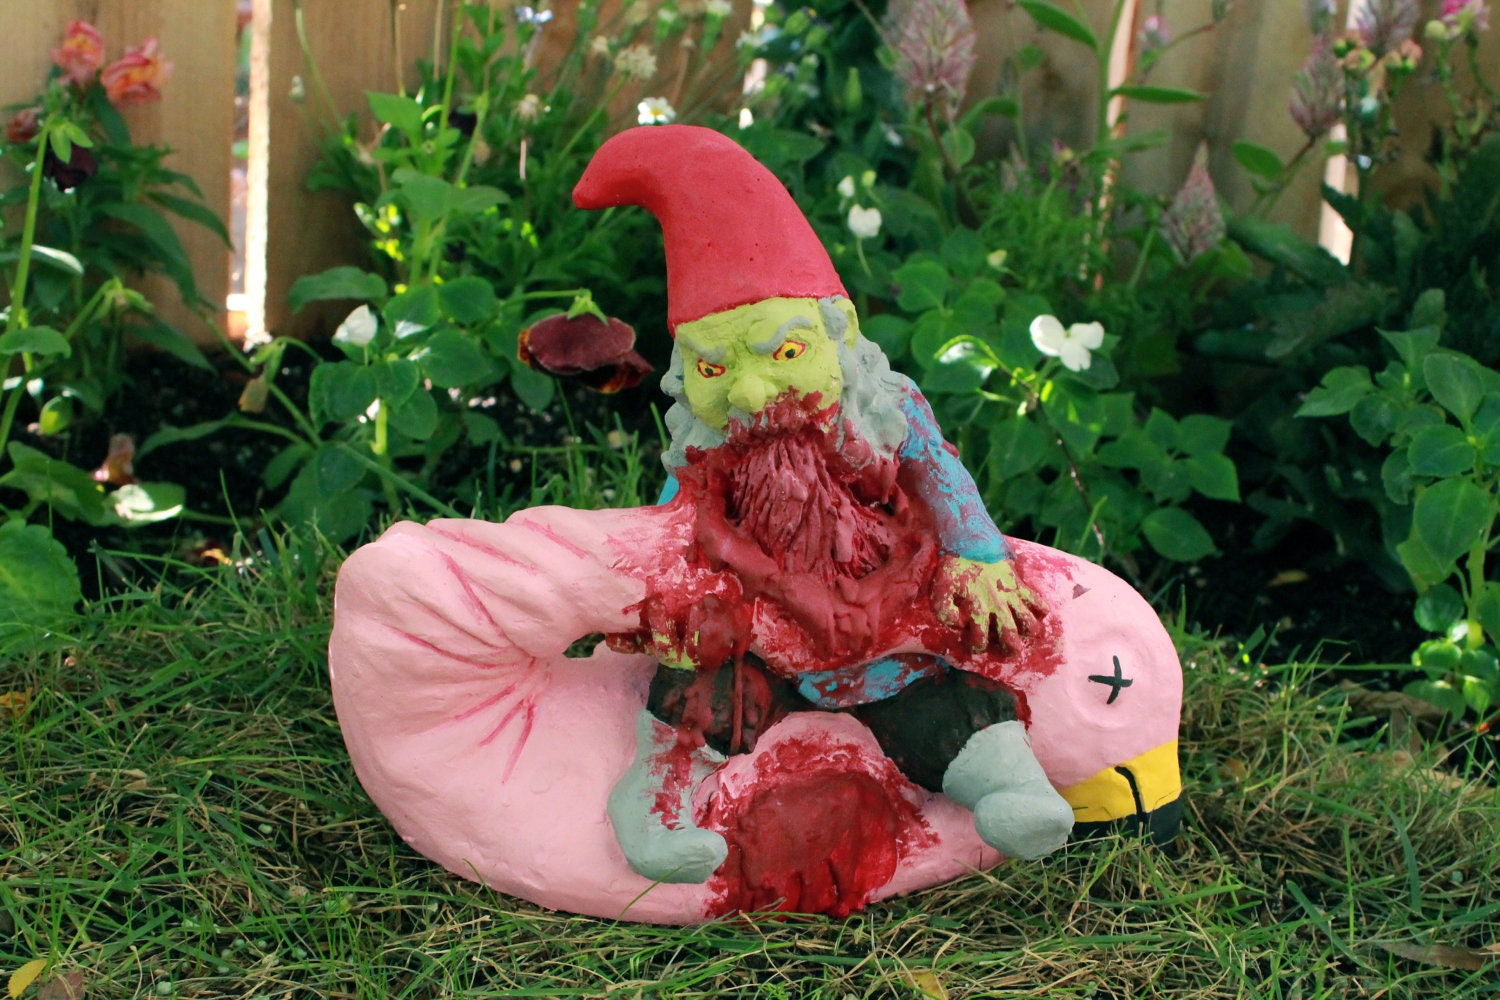 Pig lawn ornament - Zombie Gnomes Lunch Break